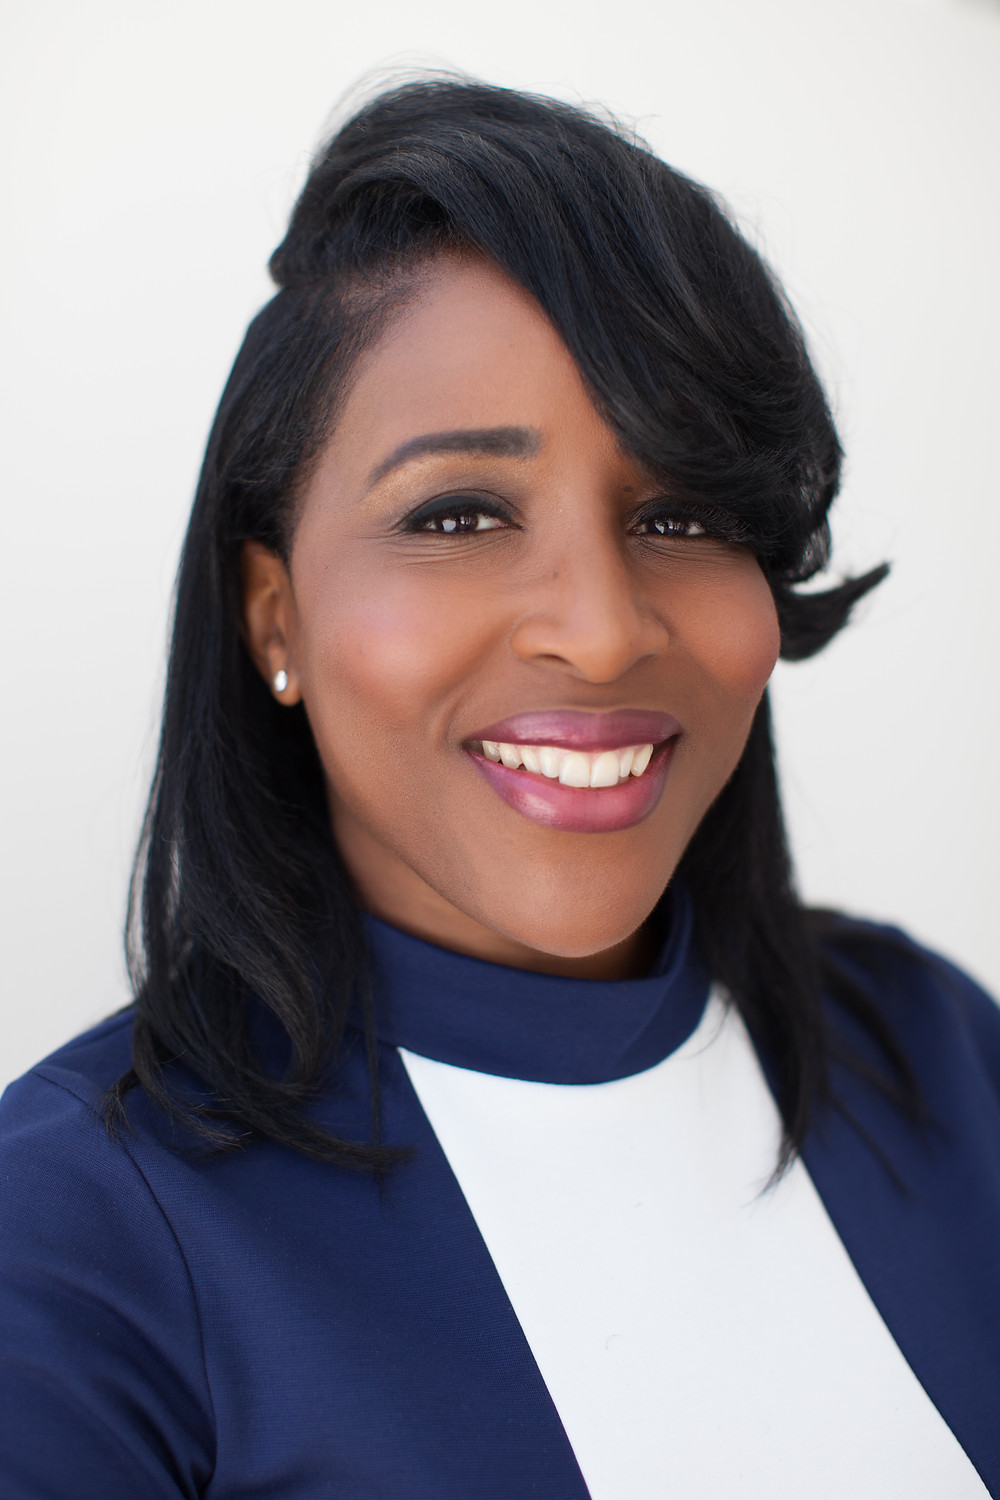 Angela Mealer is the visionary behind iAlignVision.com; her company provides process improvements, executive coaching, and structured training balanced with her business and community engagement expertise.